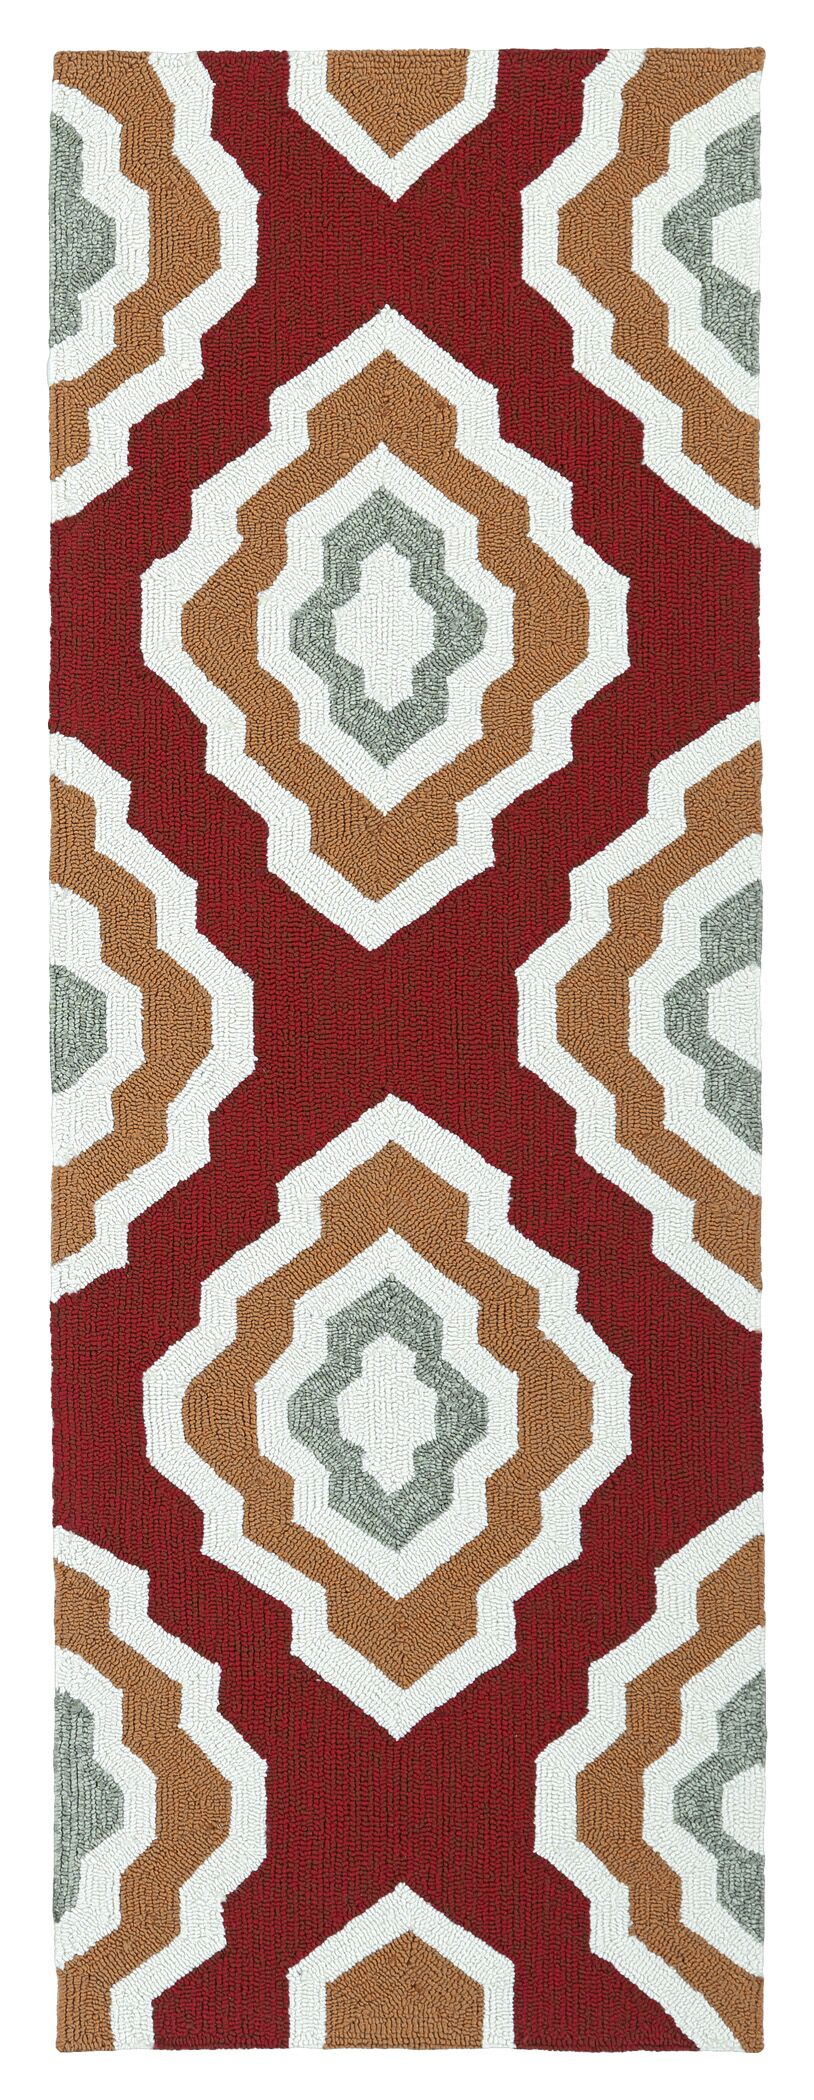 Alpine Bay Hand-Tufted Red Indoor/Outdoor Area Rug Rug Size: Rectangle 9' x 12'